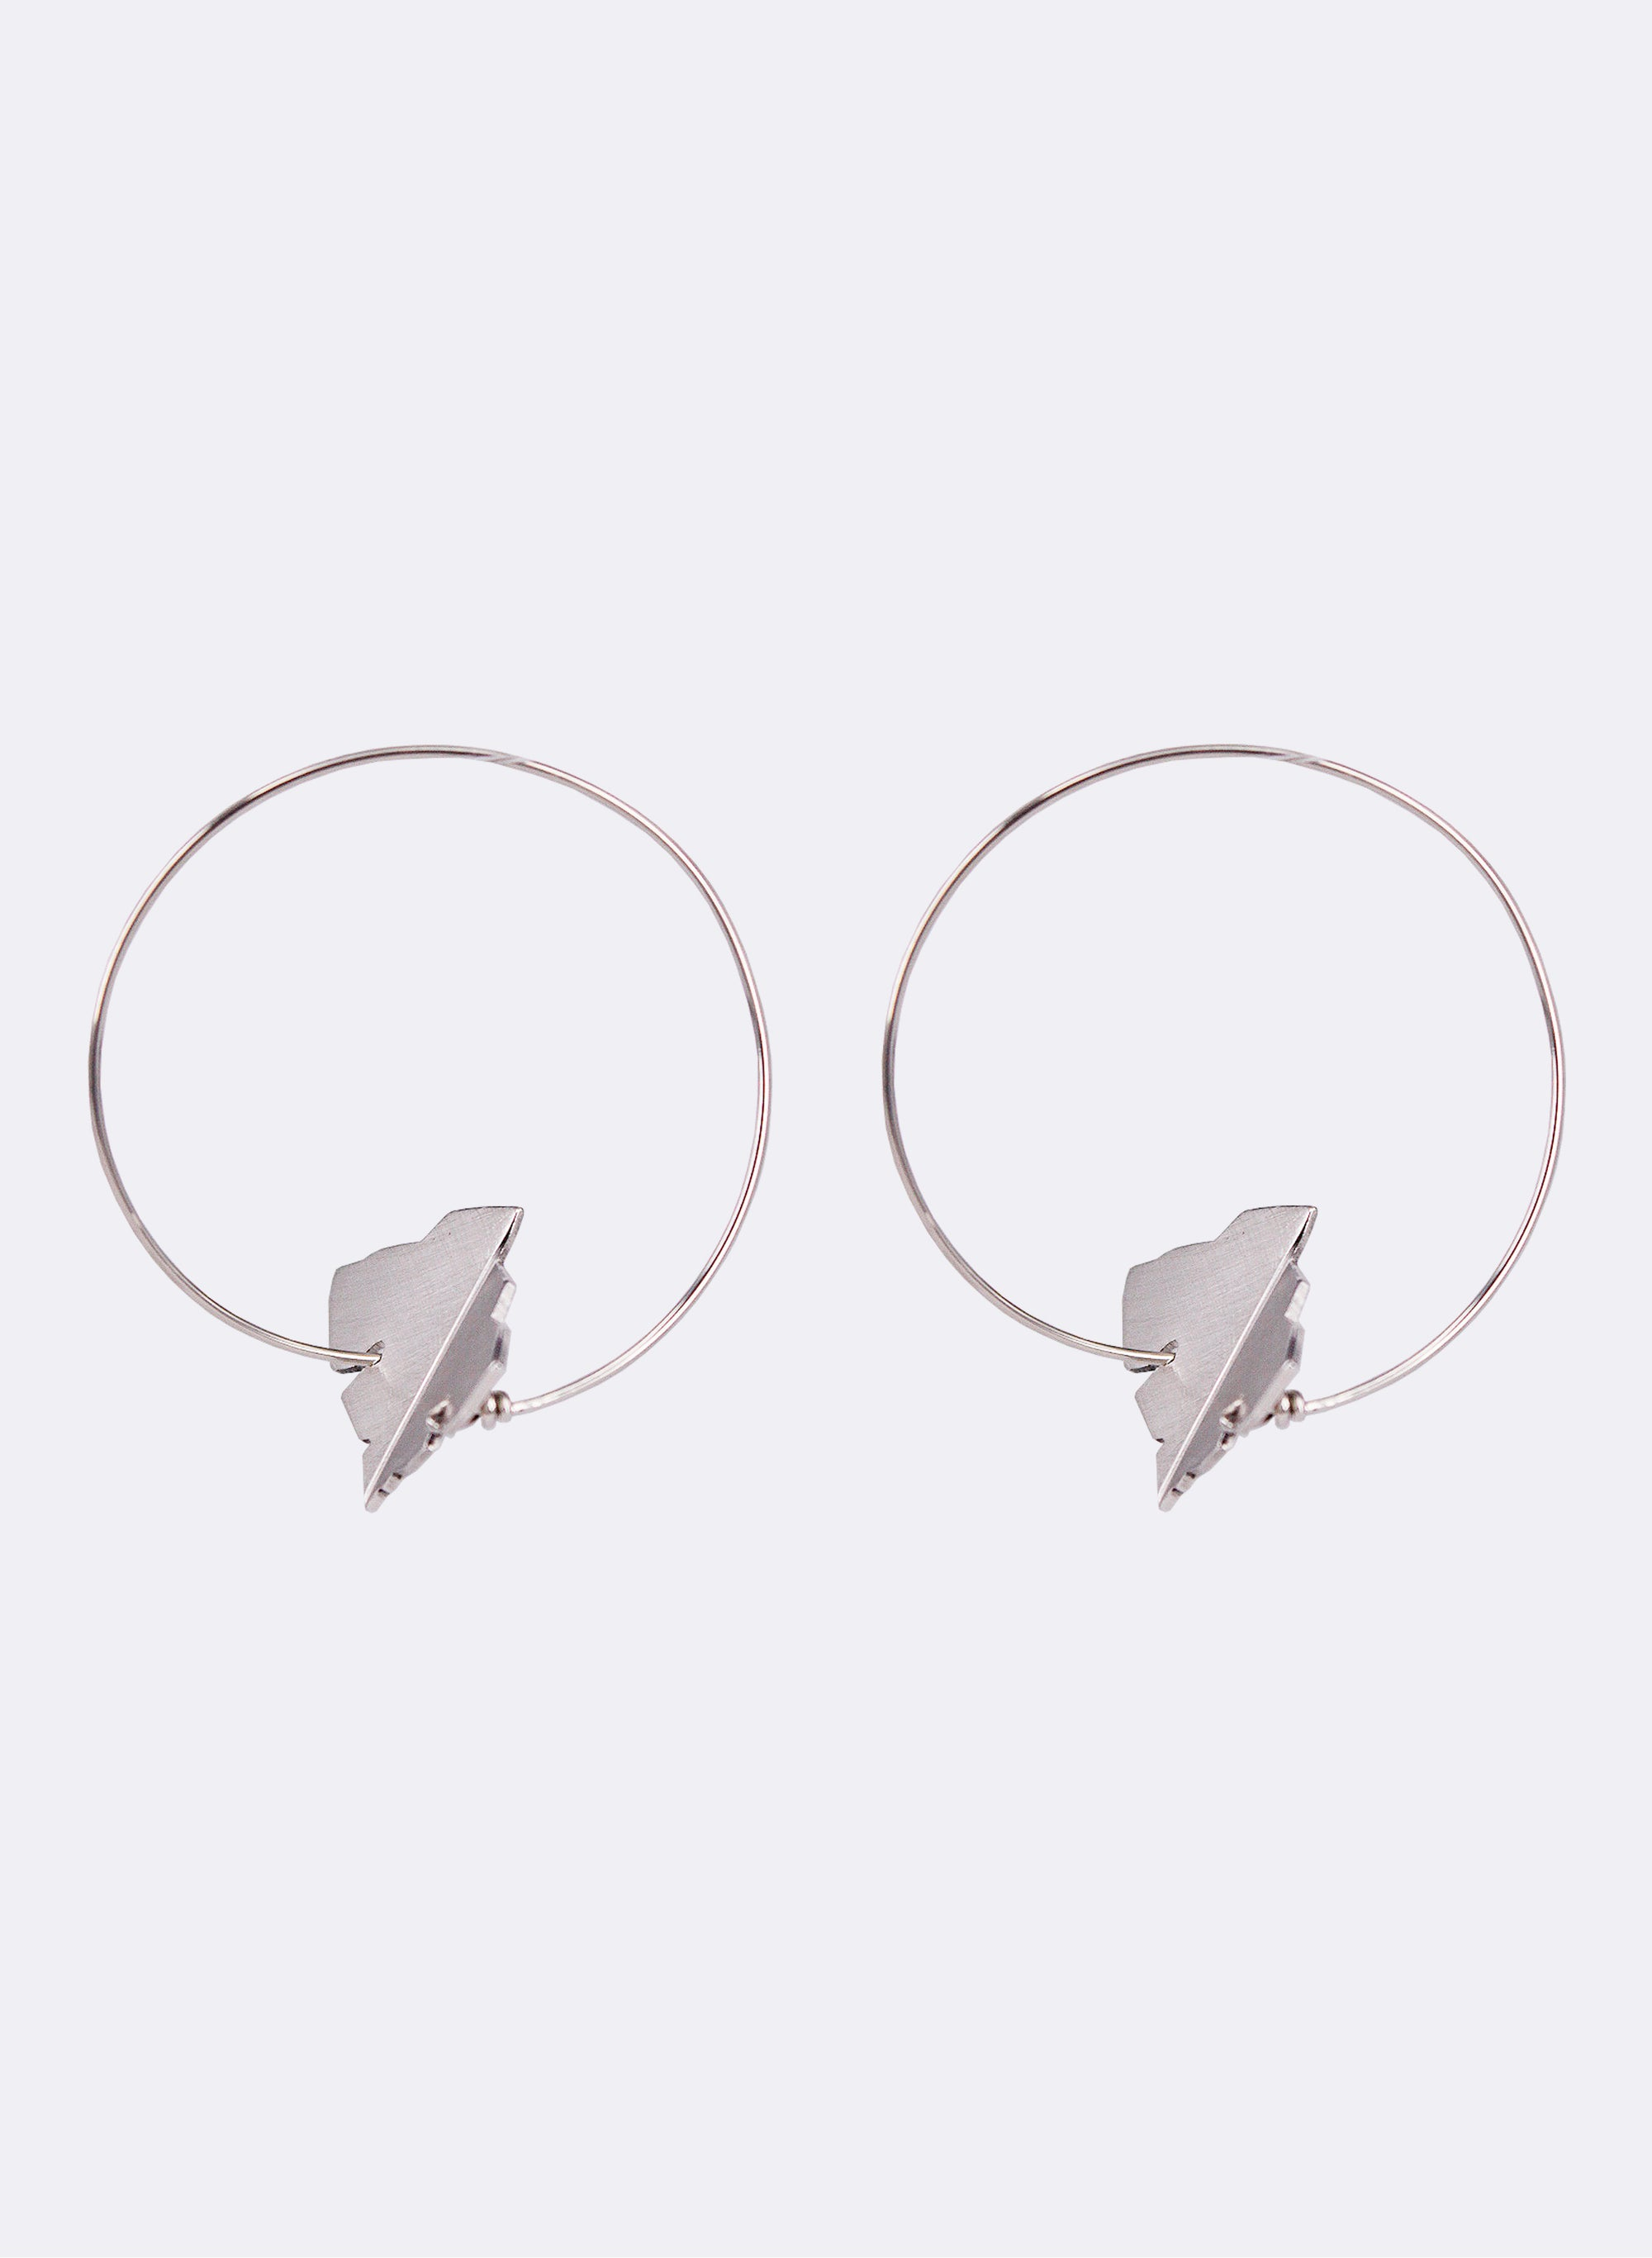 Leaf Tip Hoop Earrings - Sterling Silver